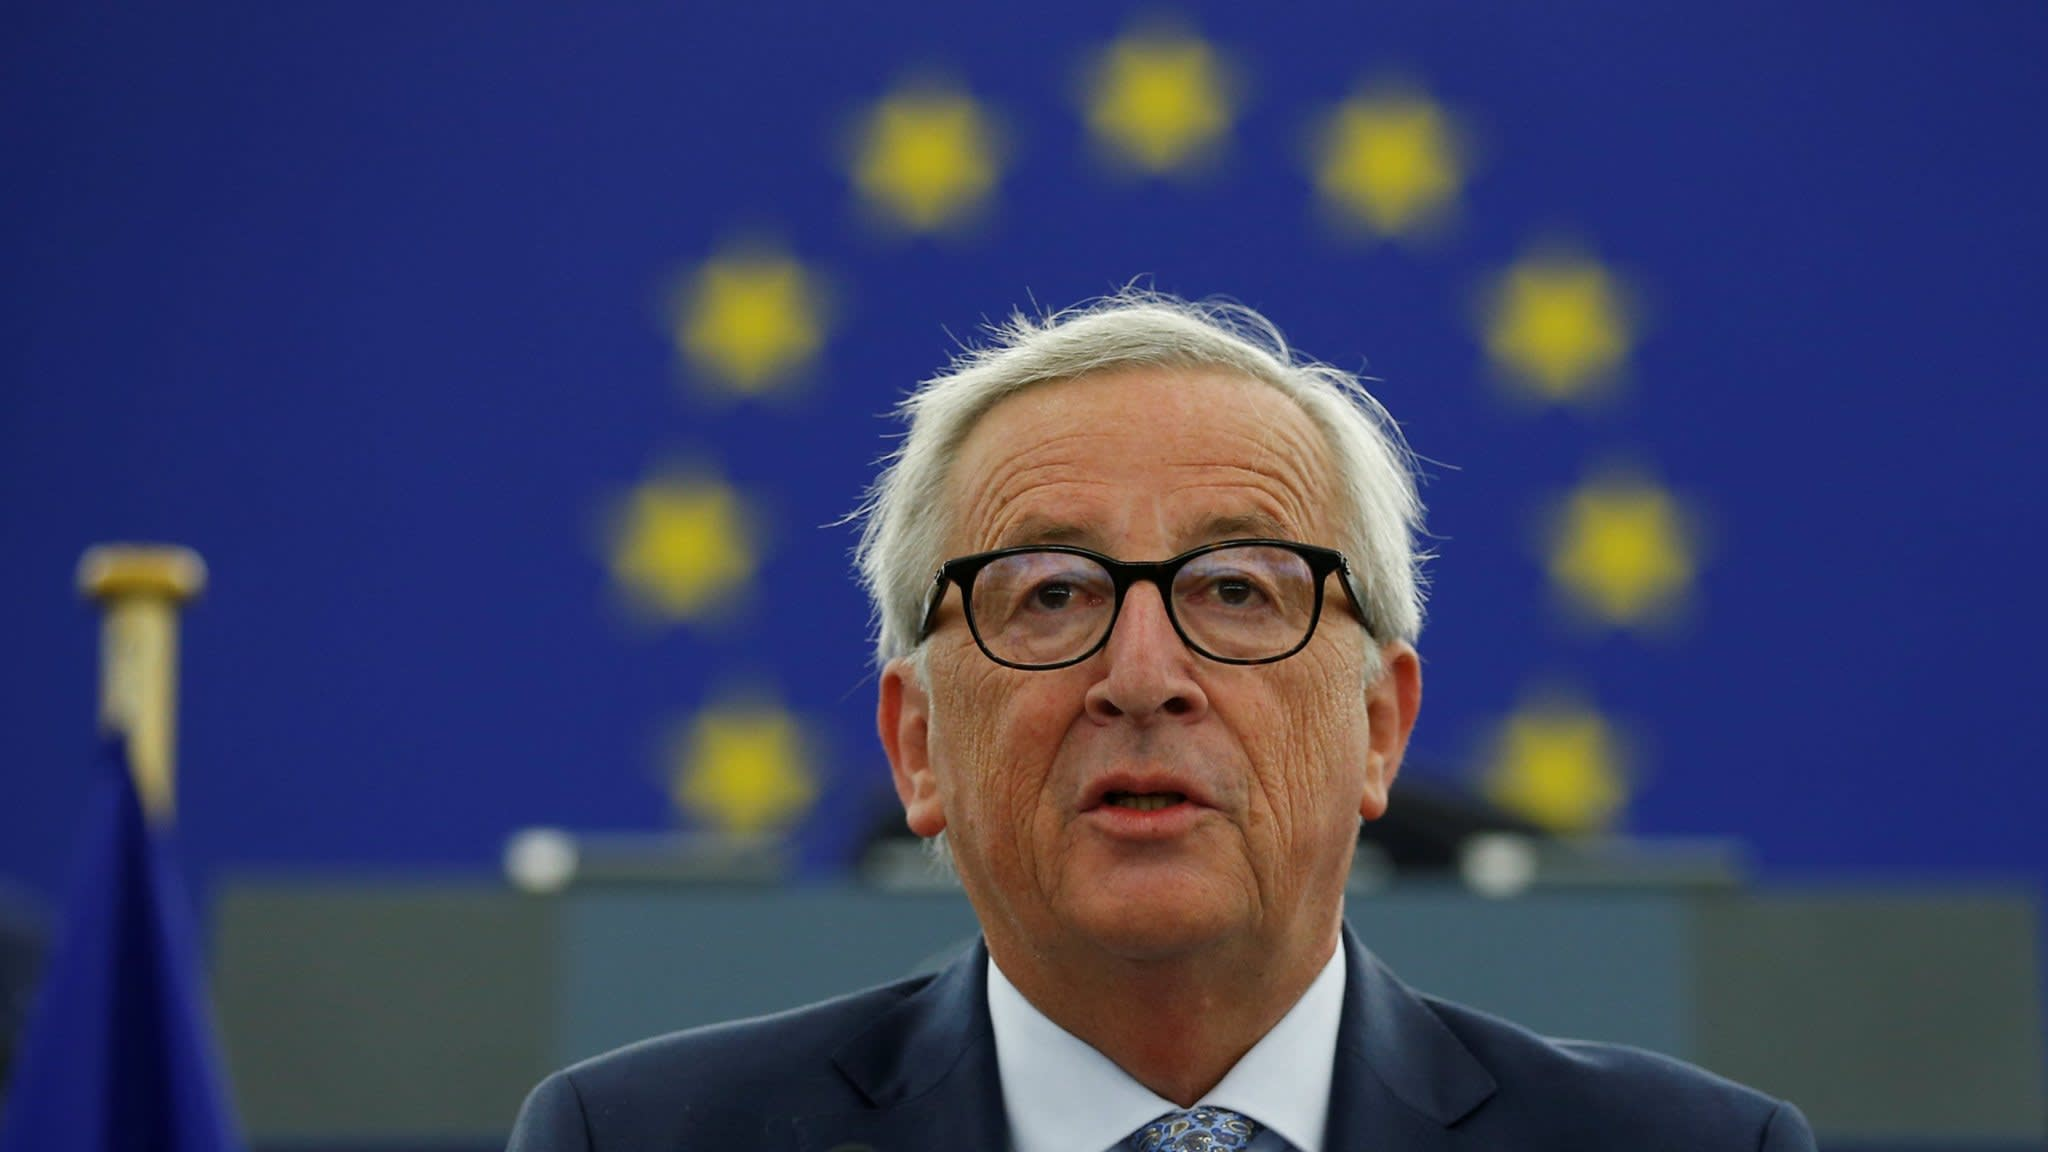 Juncker vows to turn euro into reserve currency to rival US dollar